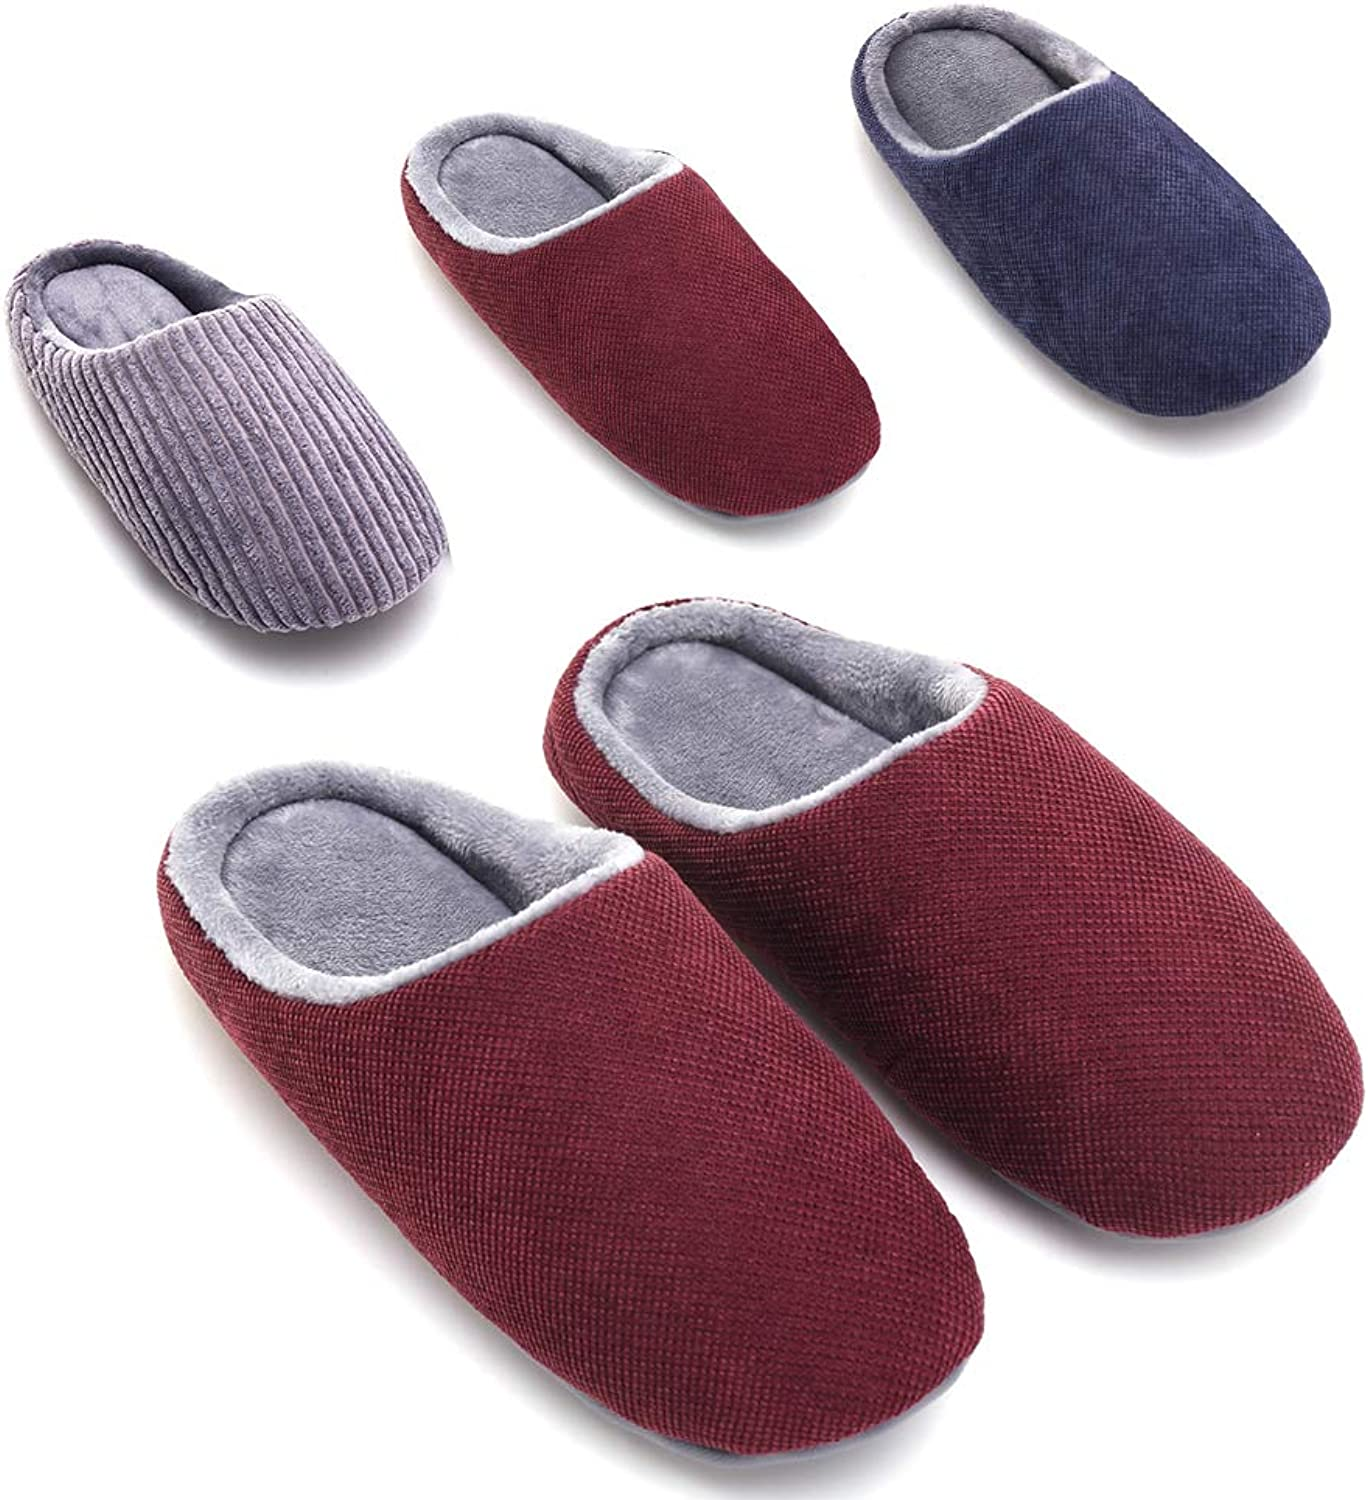 OWUNI Women's House Slippers Comfort Cozy Memory Foam Indoor Outdoor Anti-Slip Winter Warm Slippers